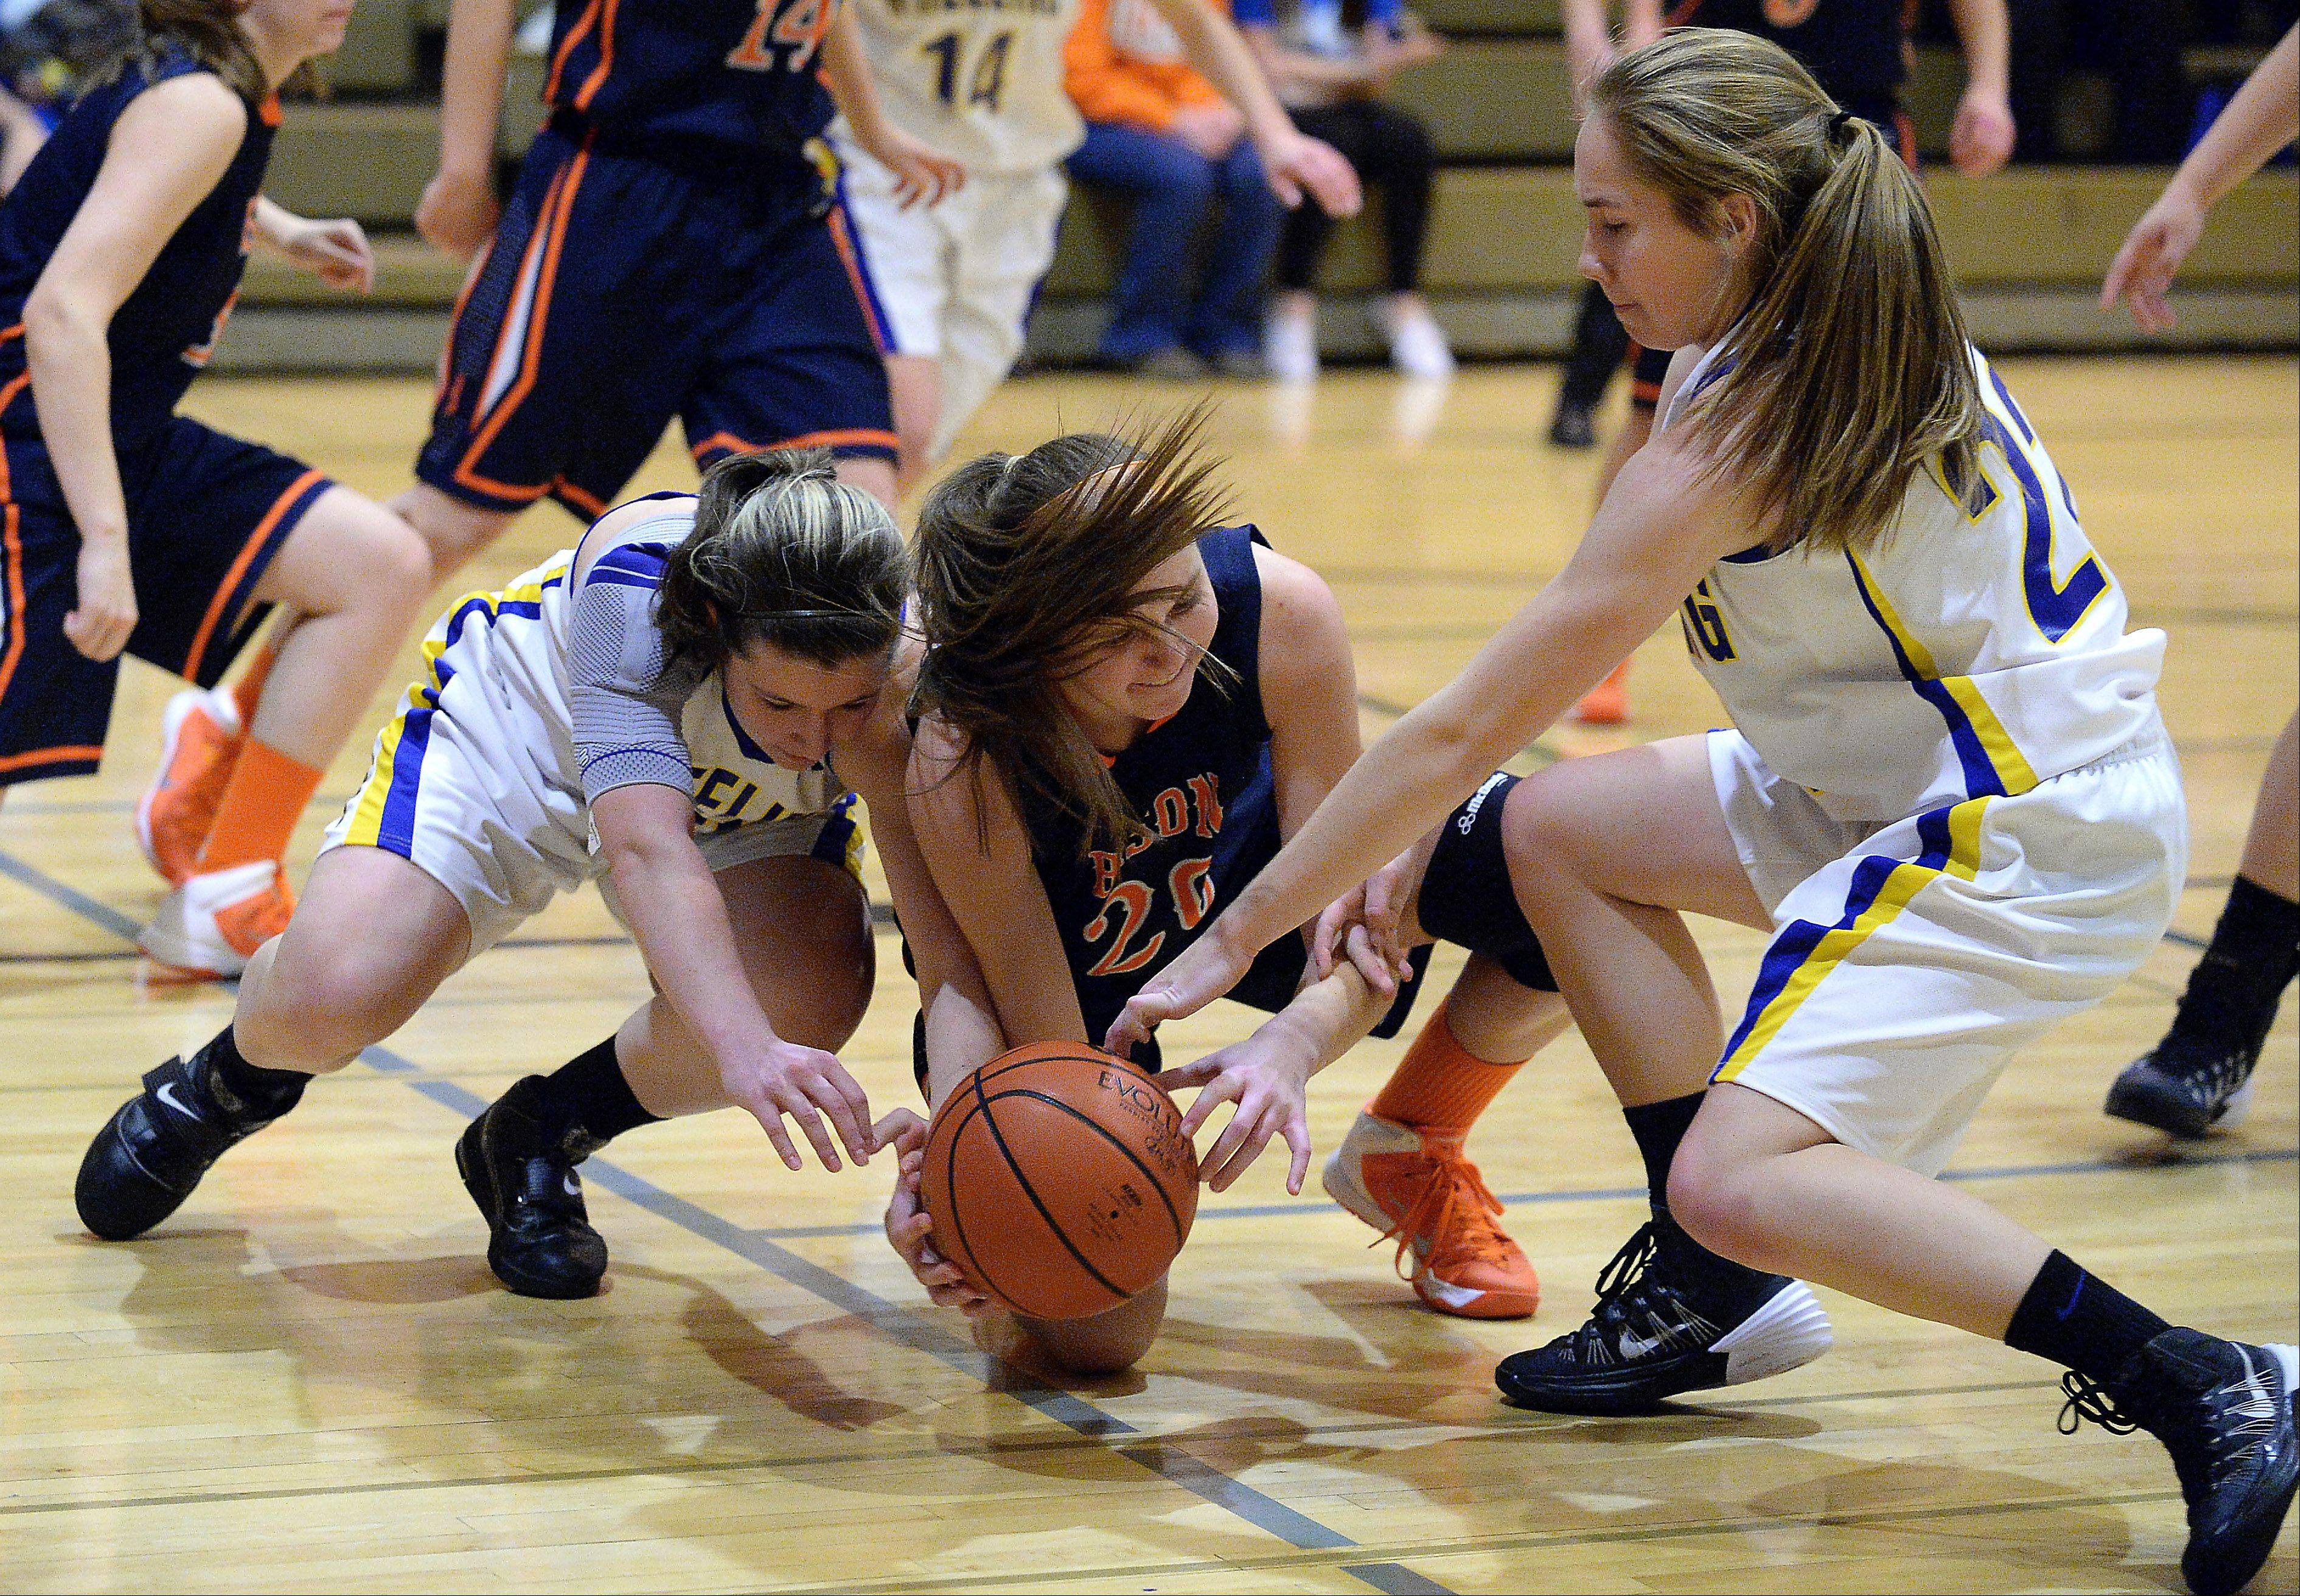 Buffalo Grove�s Courtney Meyer goes after a loose ball as Wheeling�s Nicole Zlotnikova, left, and Hailey Dammeier fight for control in the first half at Wheeling High School.